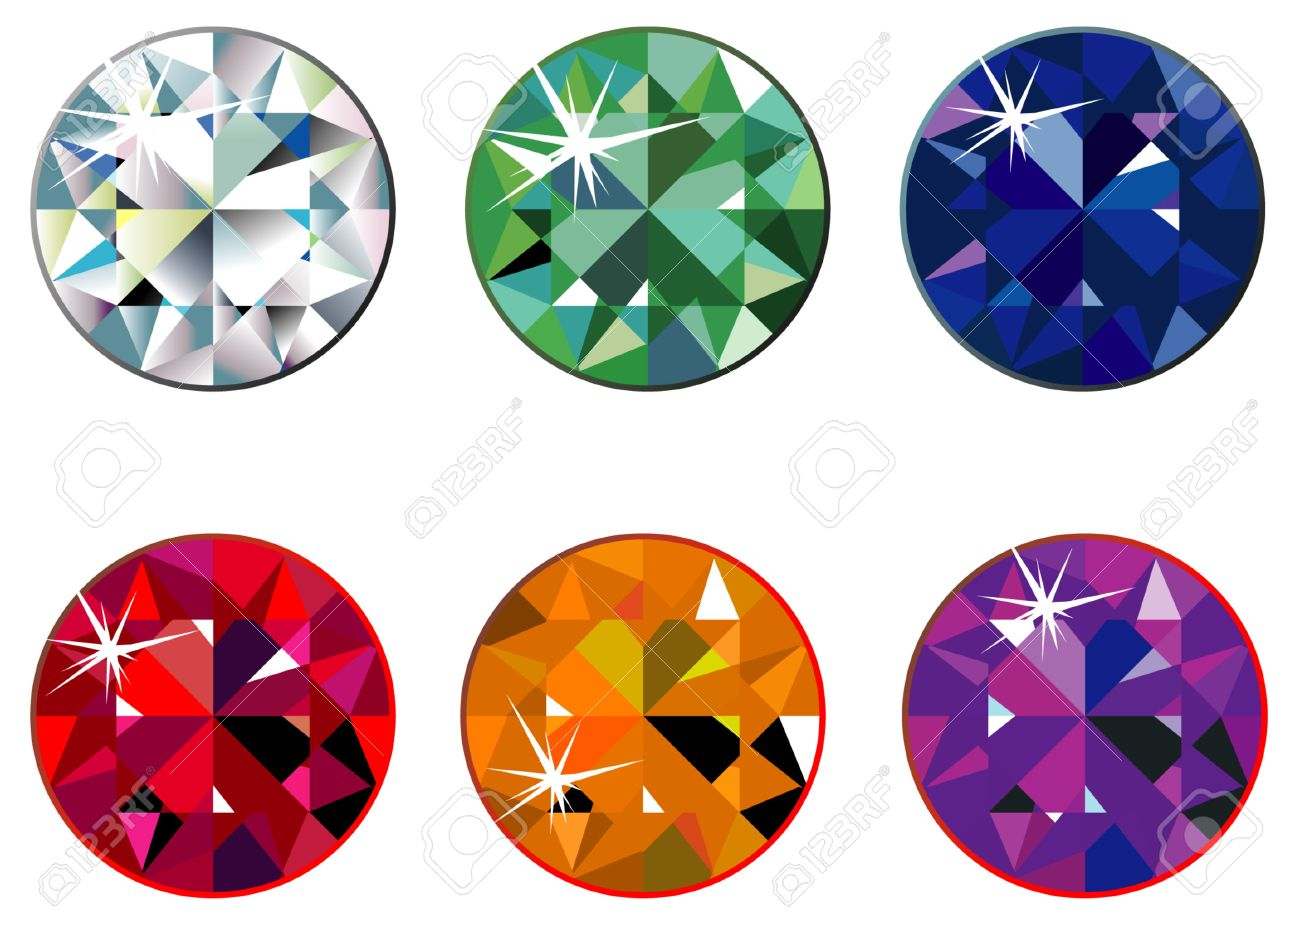 Round Precious Stones With Sparkle Royalty Free Cliparts, Vectors ...